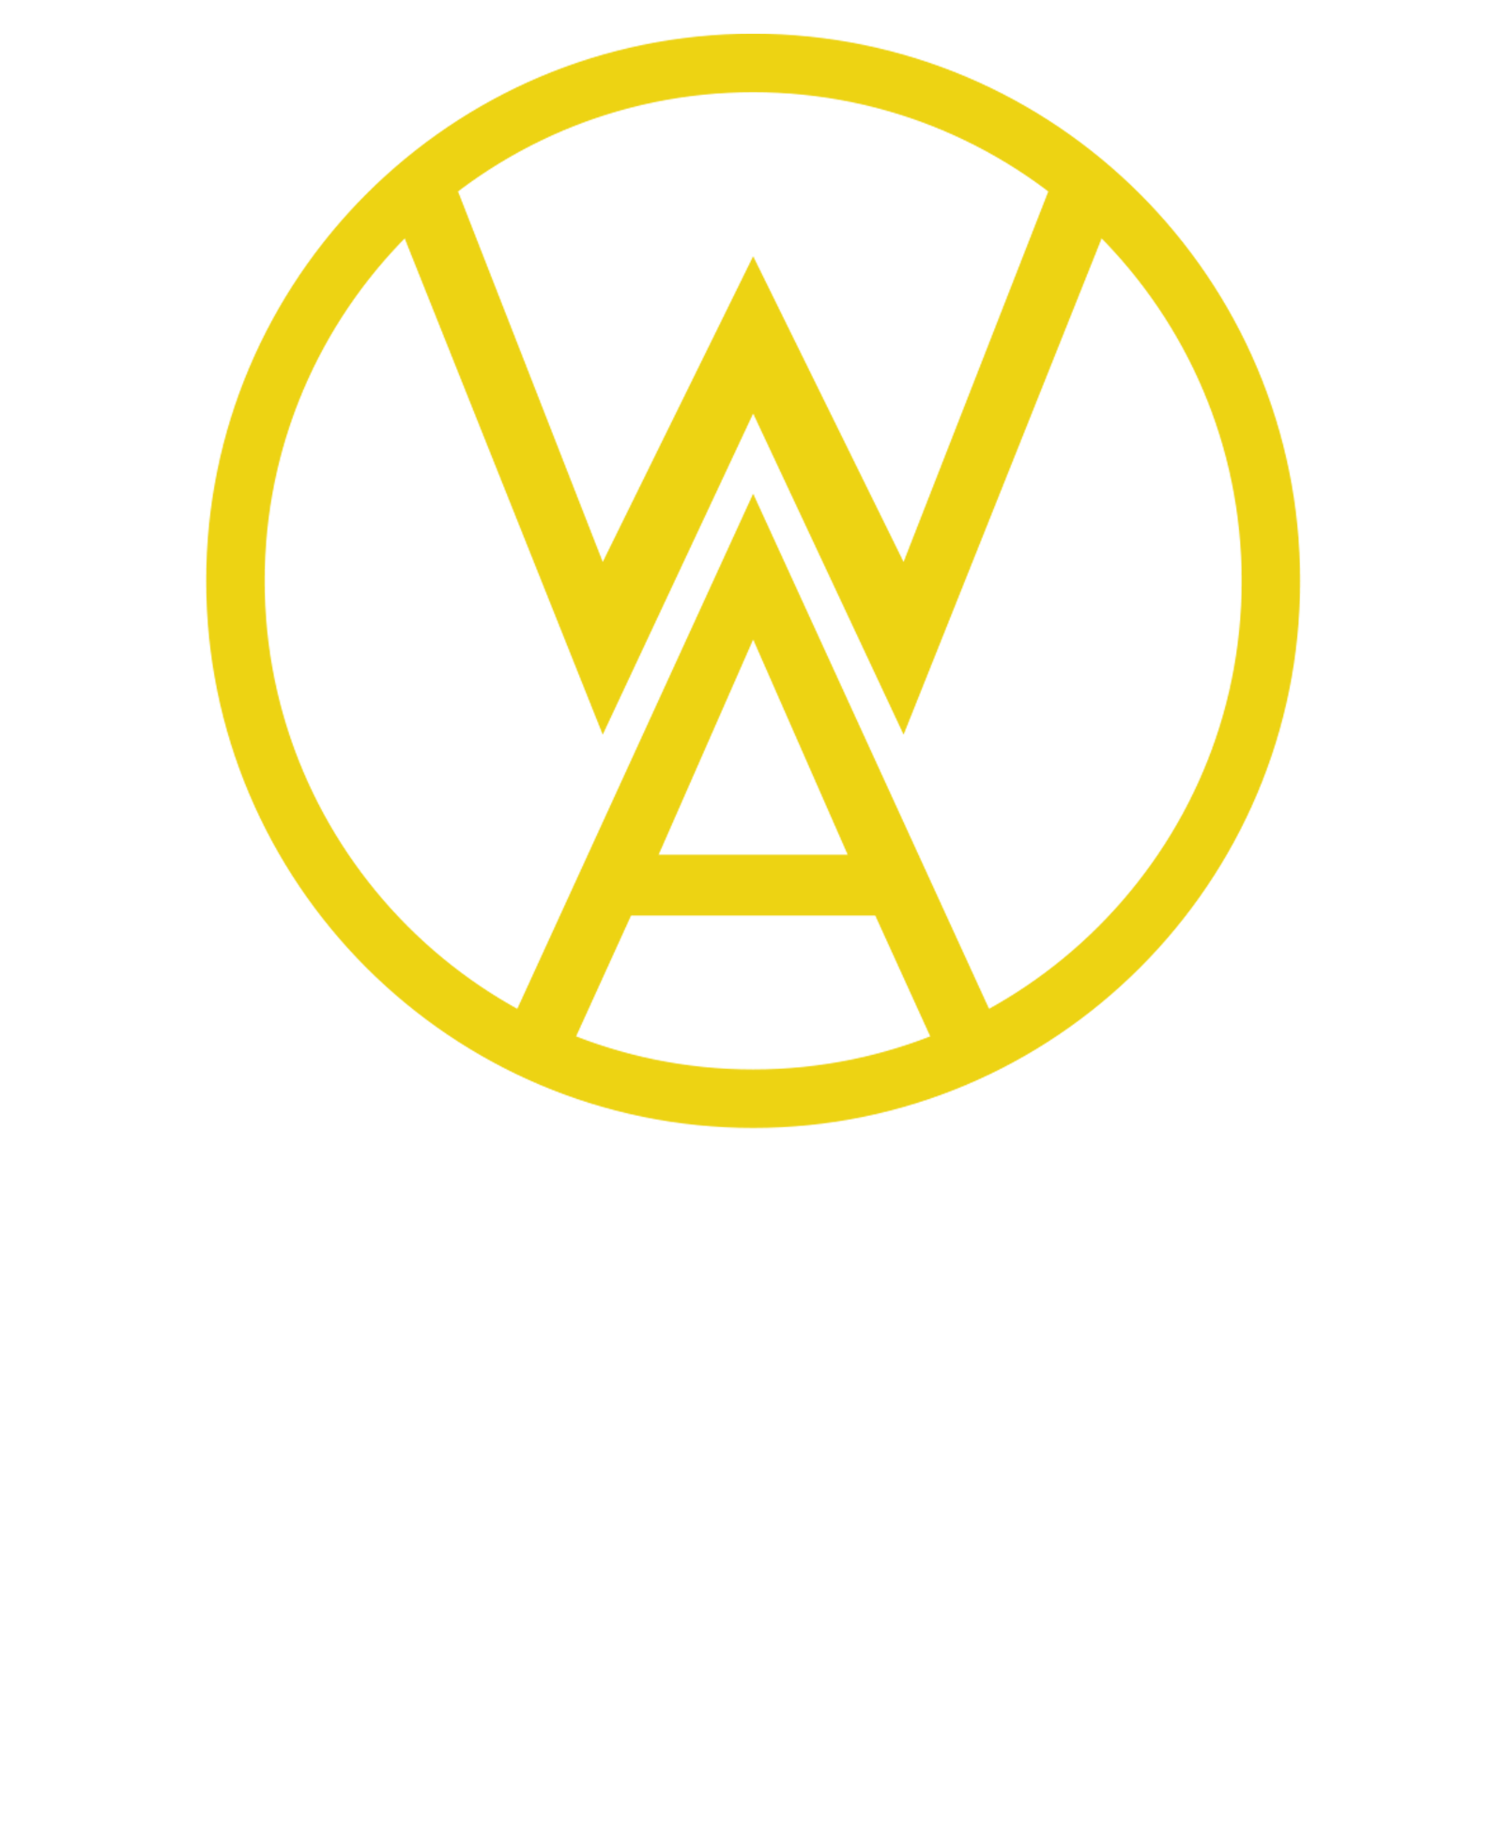 We Are One Project.